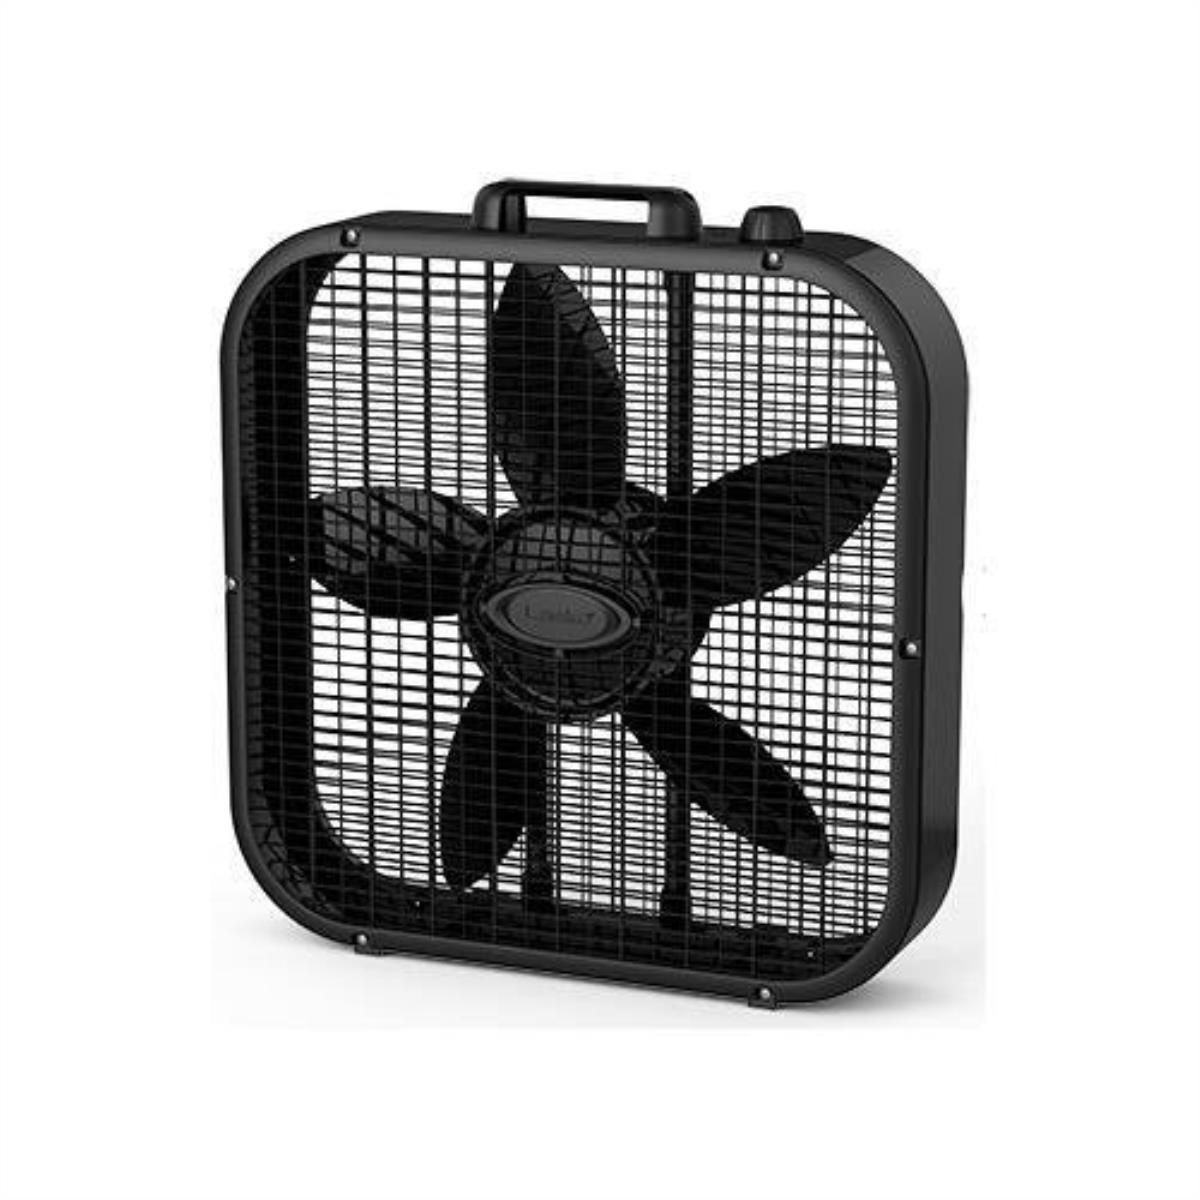 Strong Portable Window Exhaust Fan | Lasko, Box fan ...